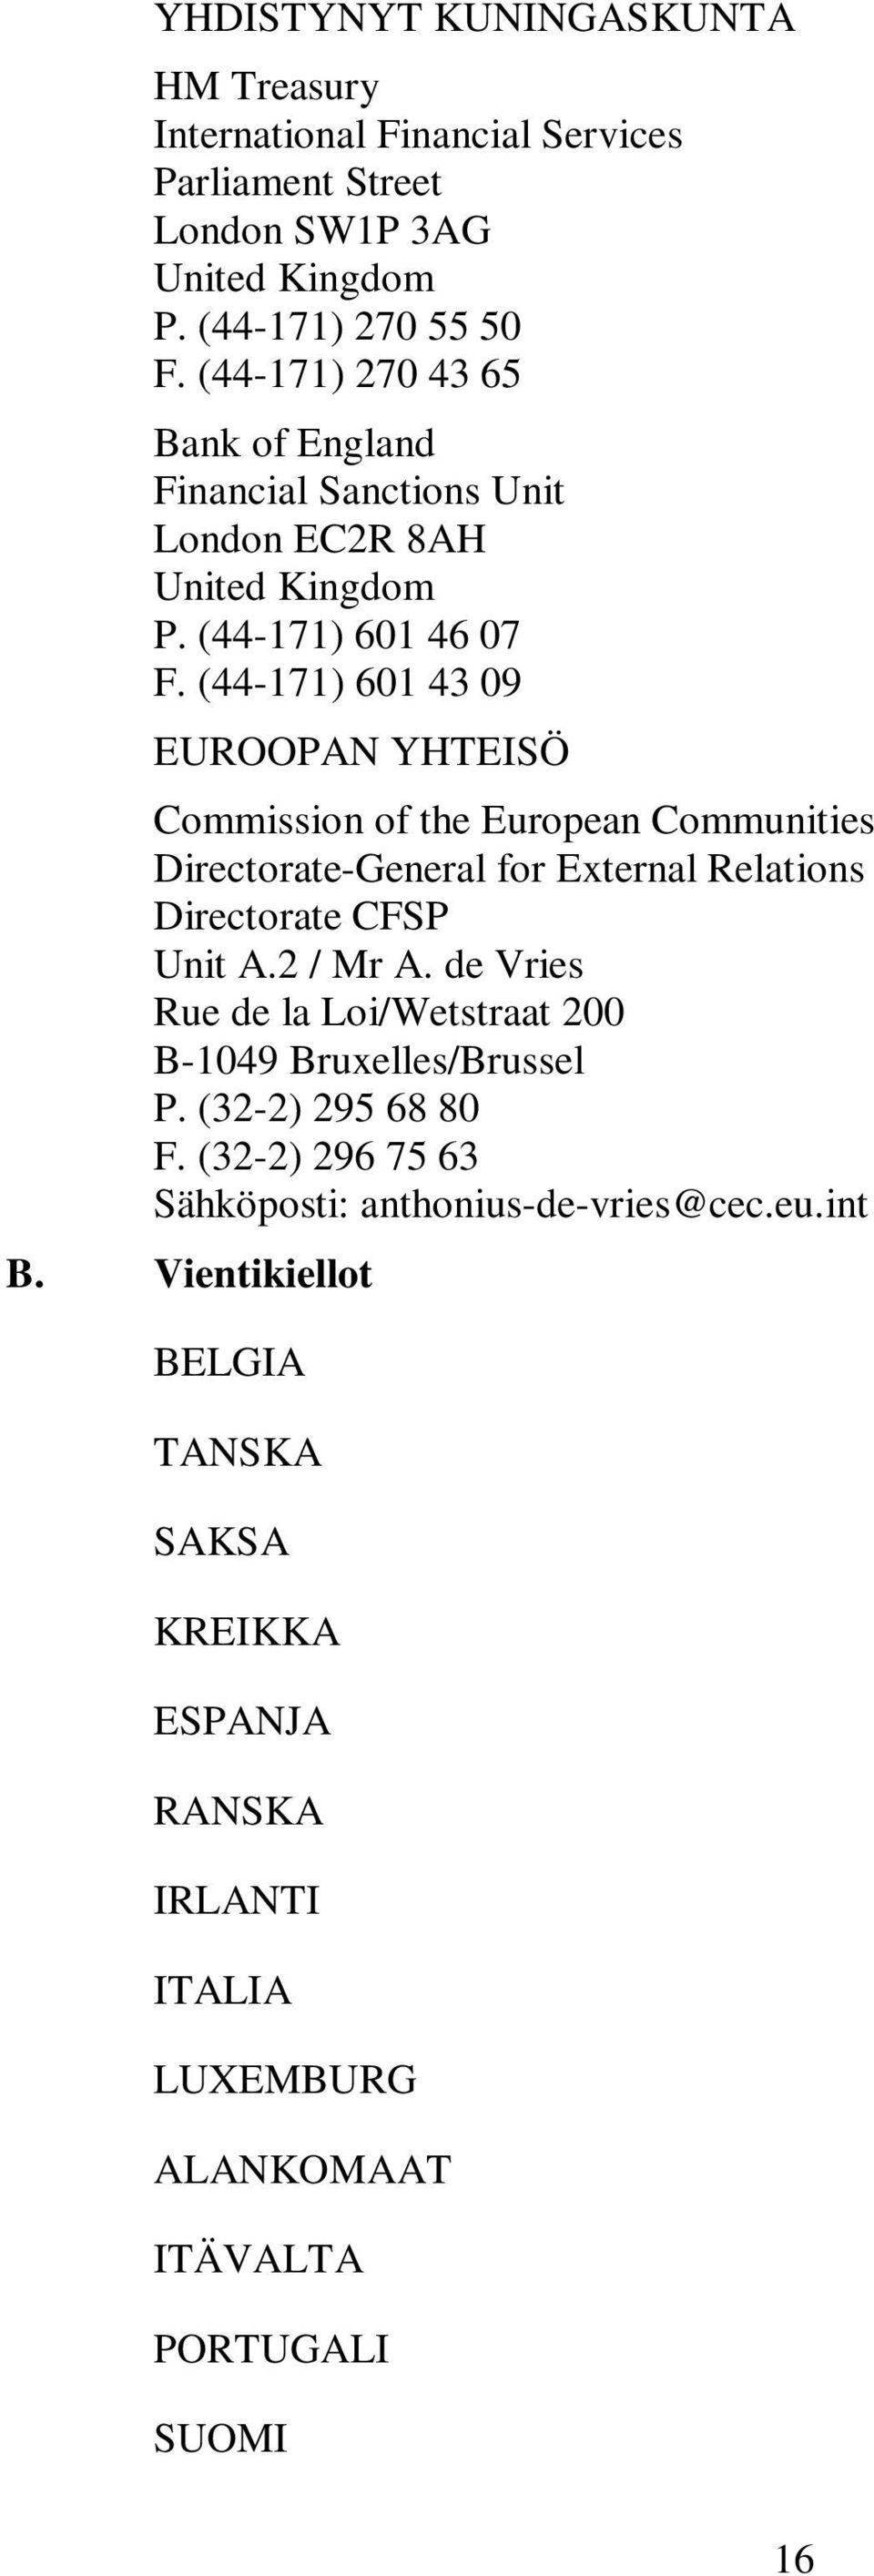 (44-171) 601 43 09 EUROOPAN YHTEISÖ Commission of the European Communities Directorate-General for External Relations Directorate CFSP Unit A.2 / Mr A.